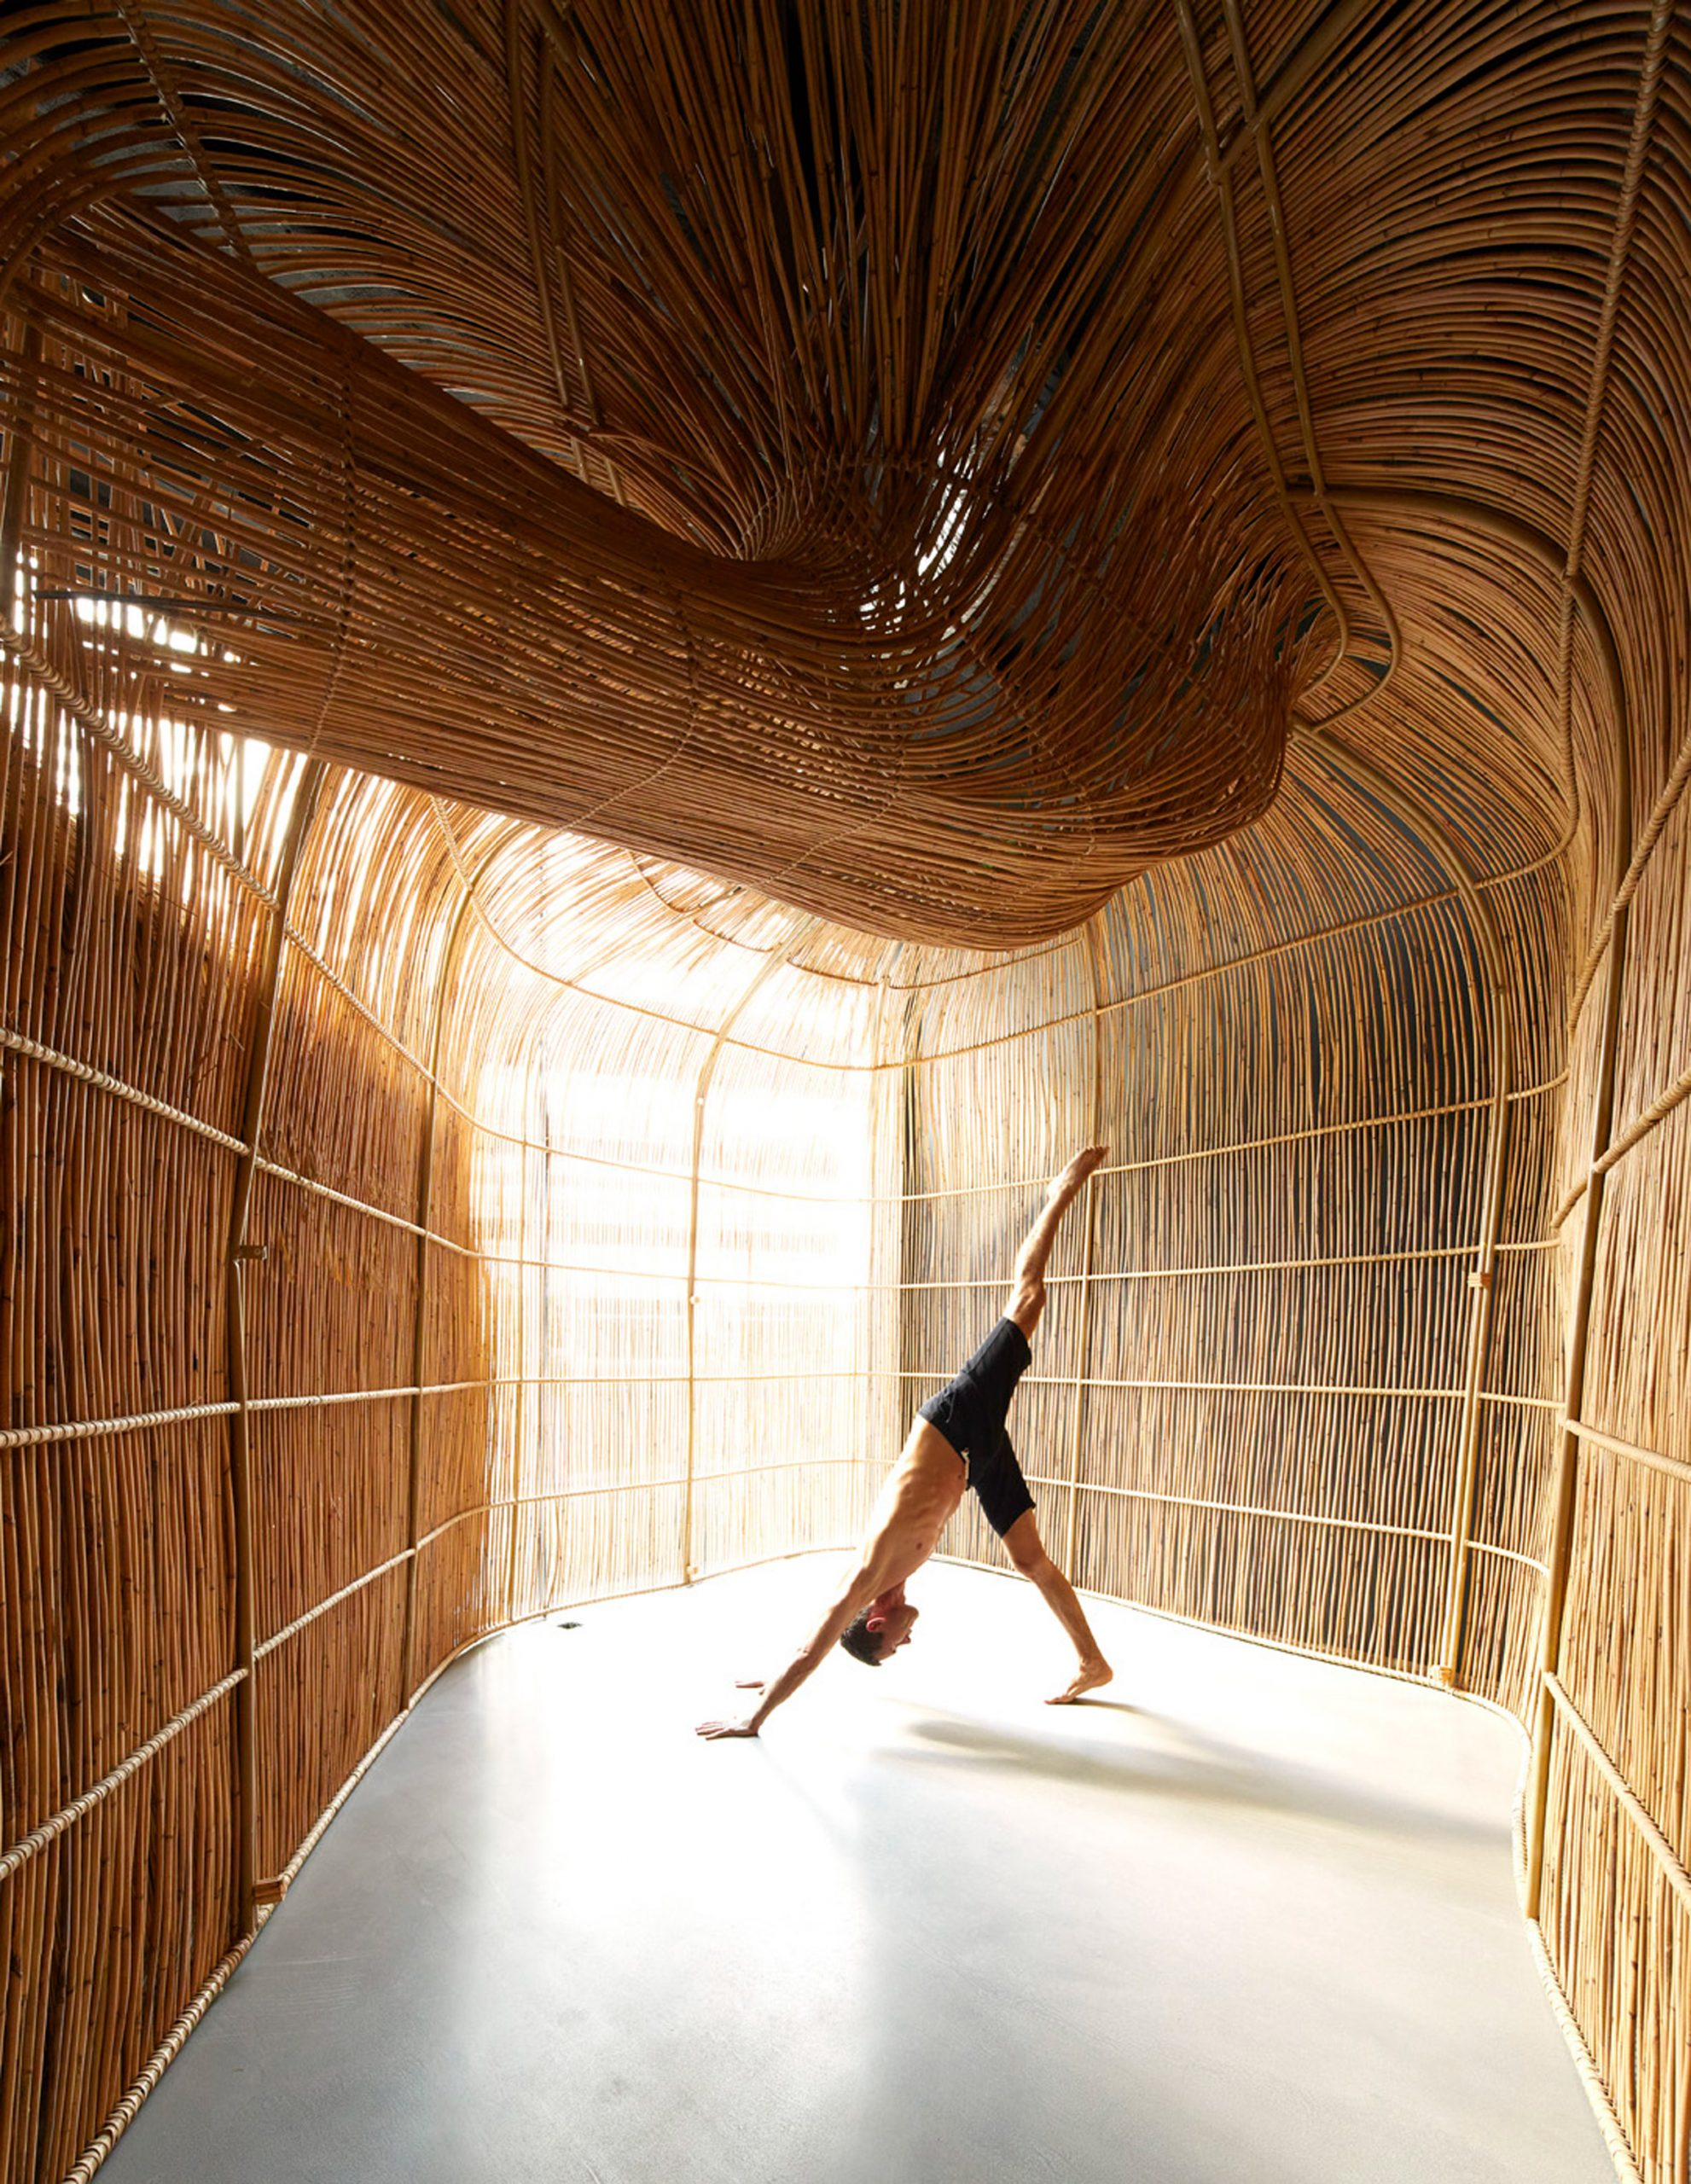 Rattan yoga pods at Vikasa studio in Bangkok